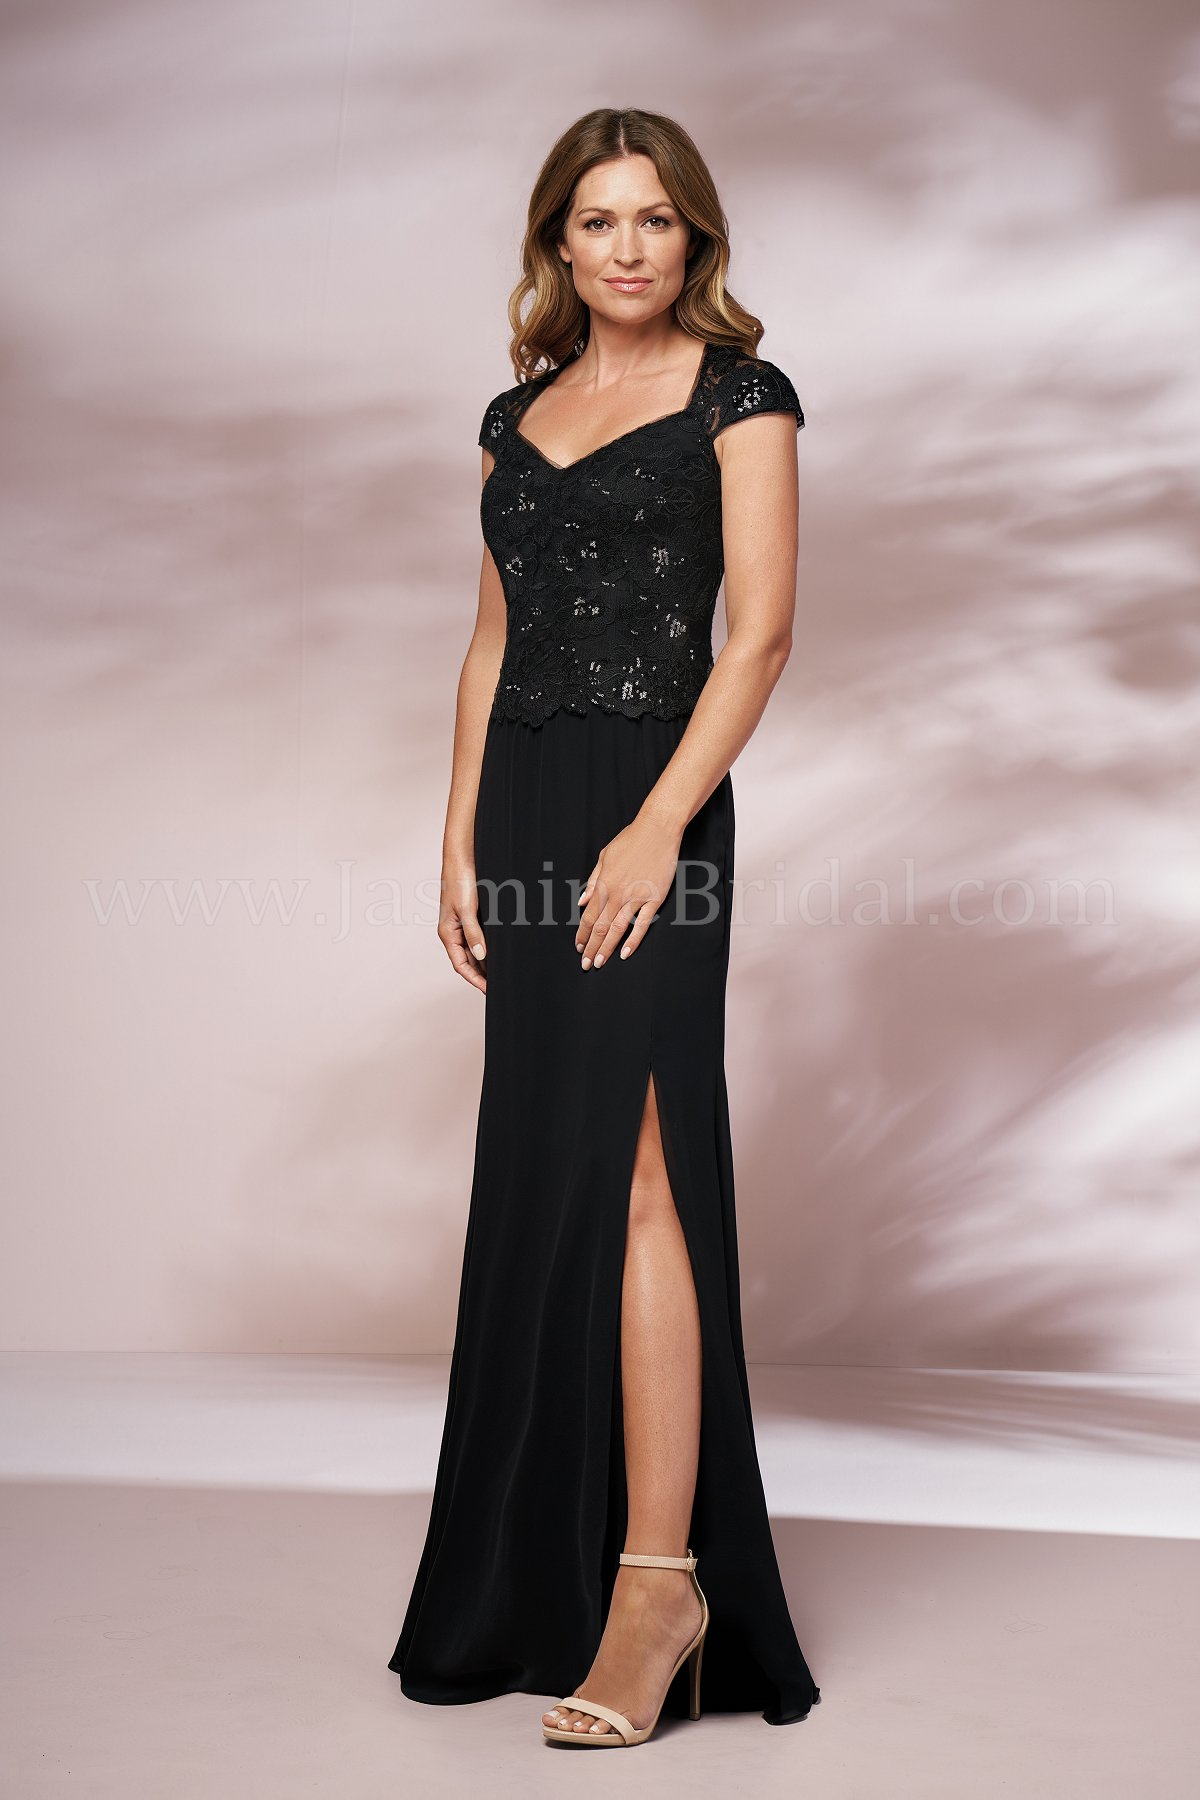 ac6621ab0c4a J205015 Long Queen Anne Neckline Sequin Lace & Jade Chiffon MOB Dress with  Slit